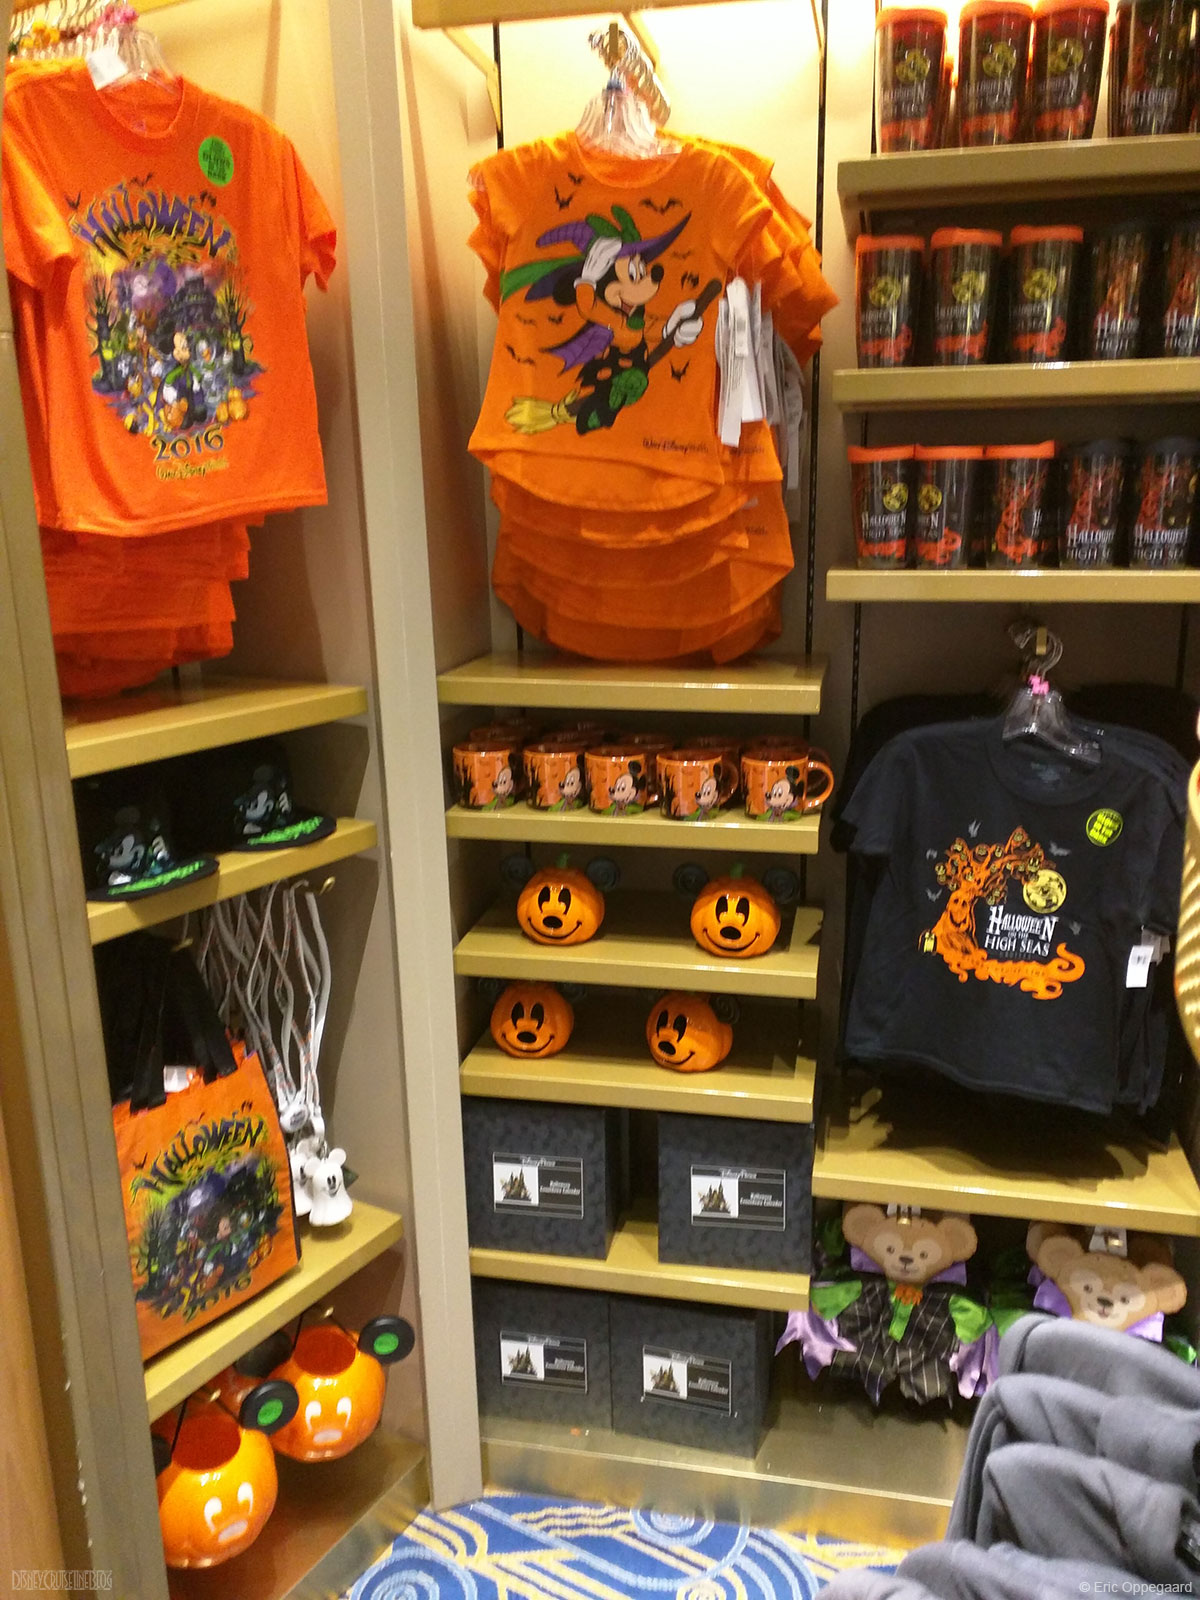 Disney Cruise Line Halloween Merchandise.Gold Platinum Castaway Club Merchandise Available To Purchase